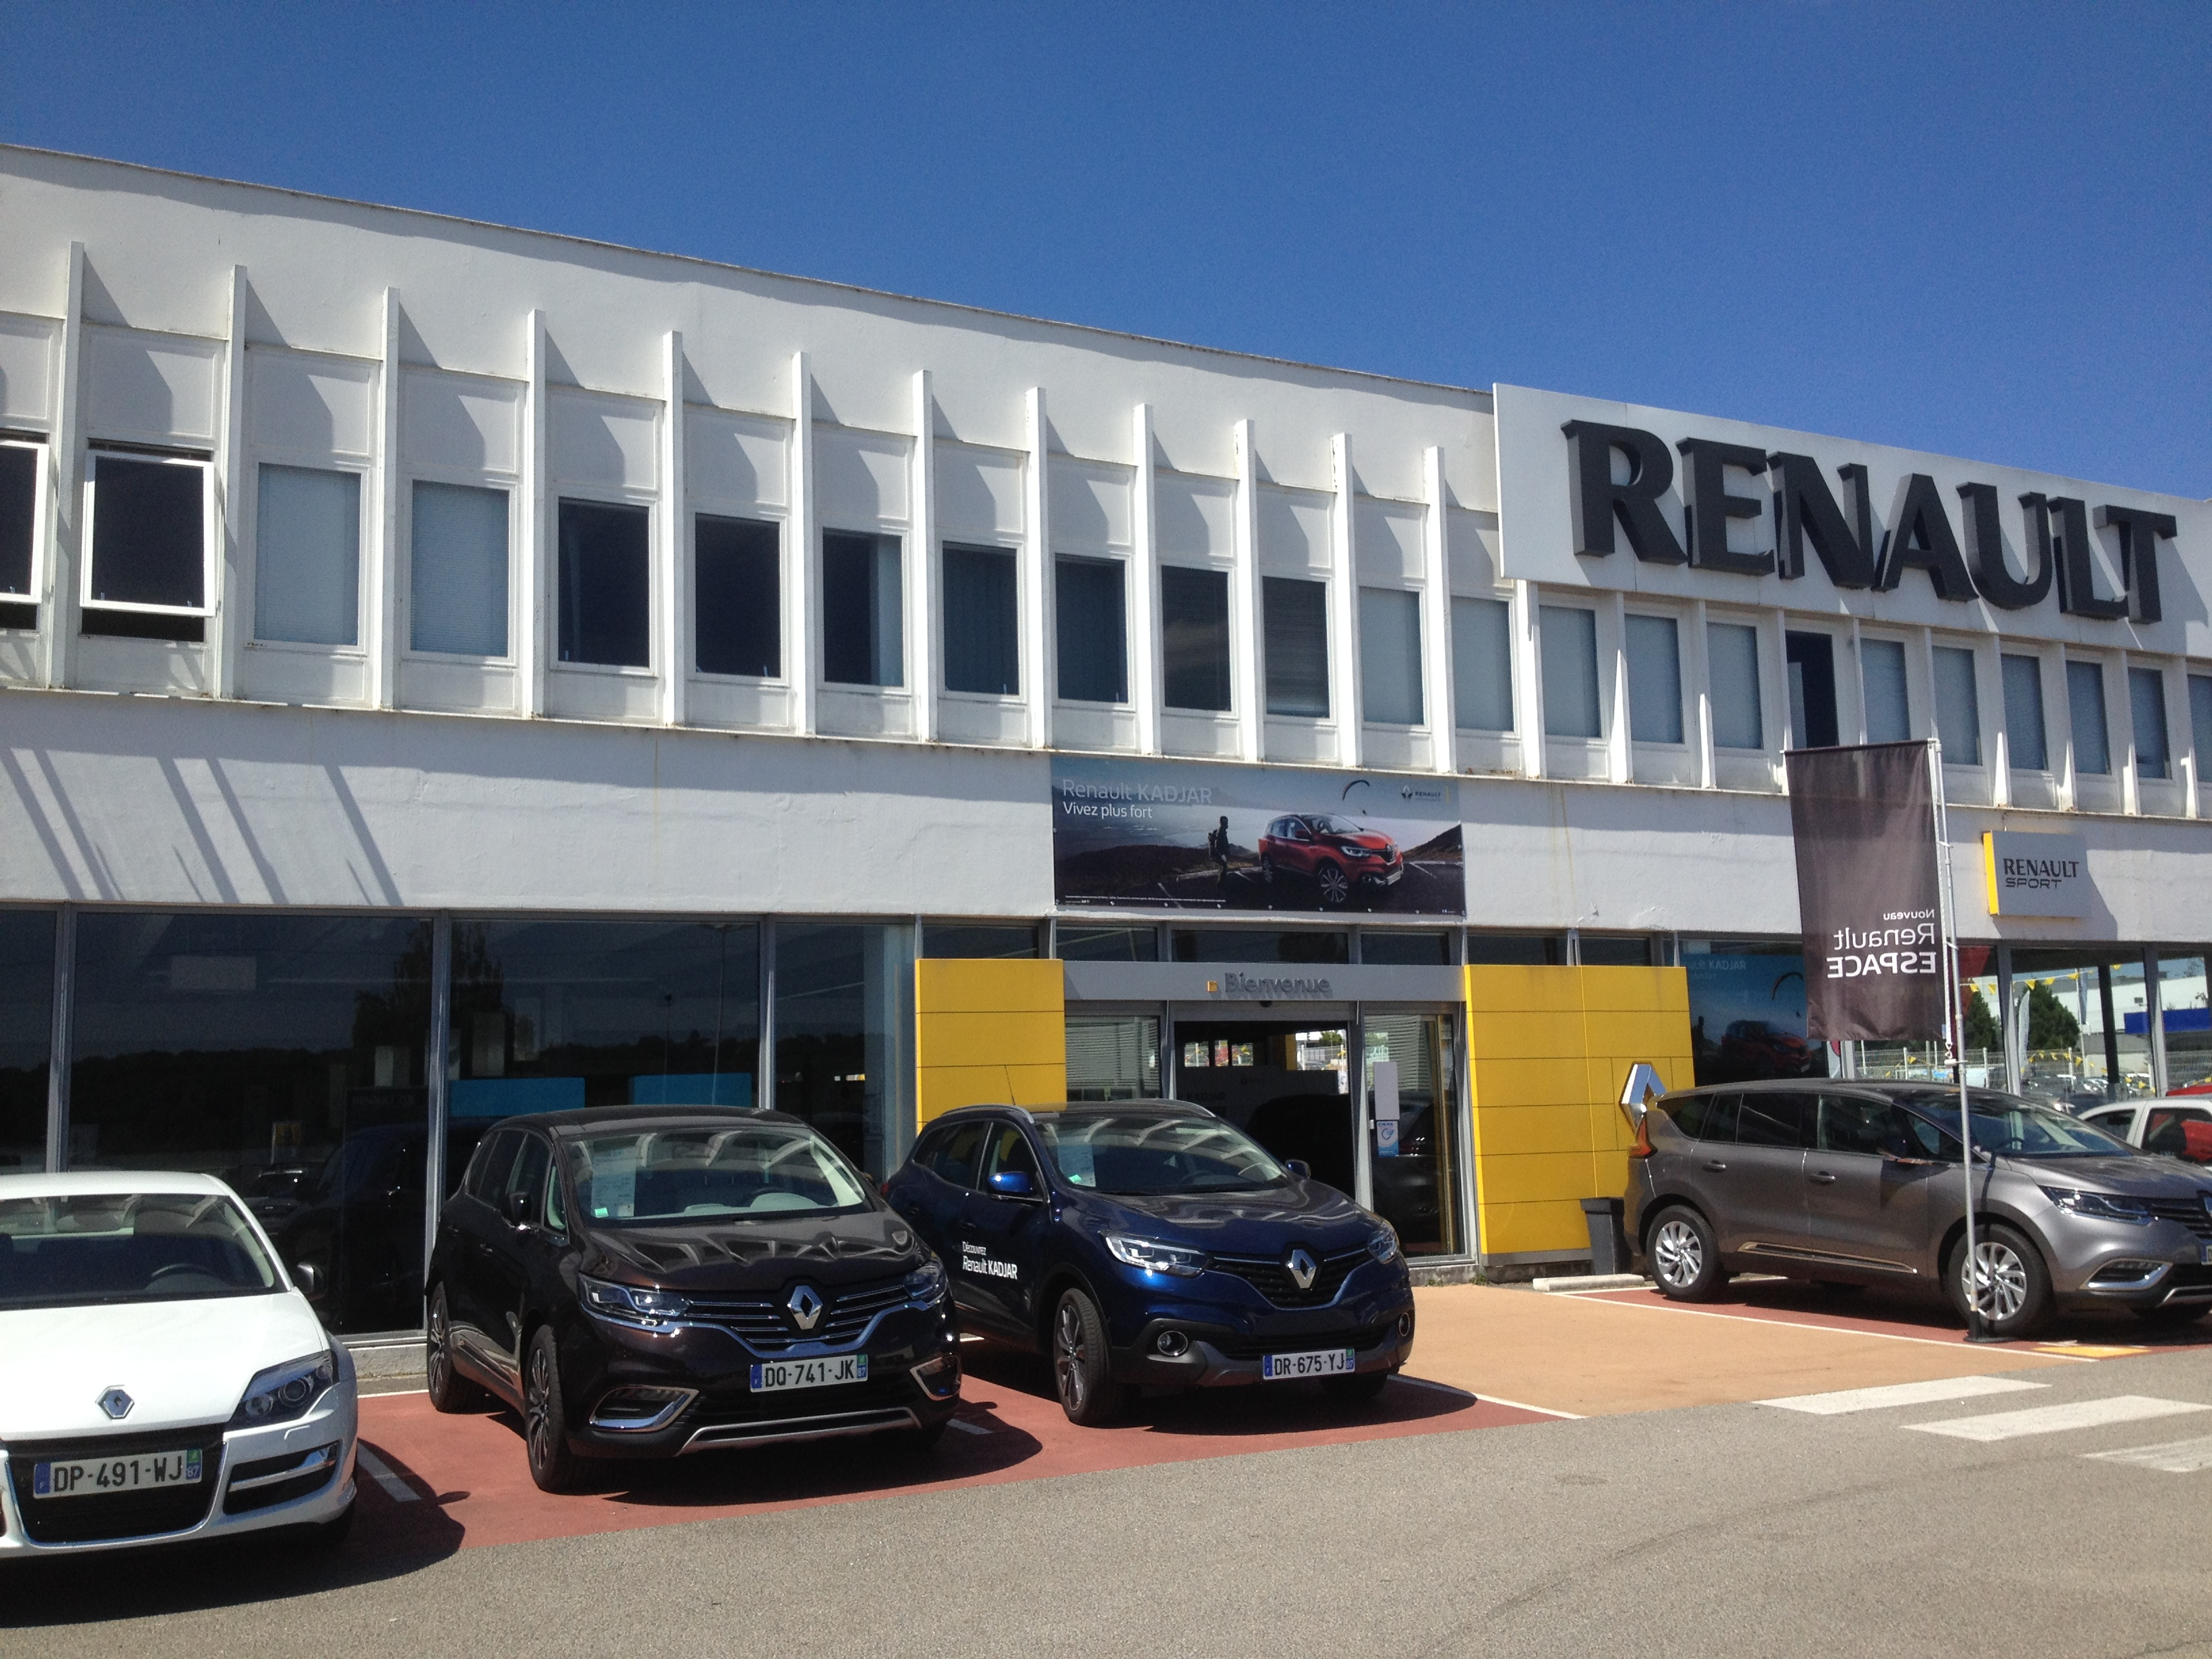 Pr sentation de la soci t renault limoges lda for Garage renault saint orens